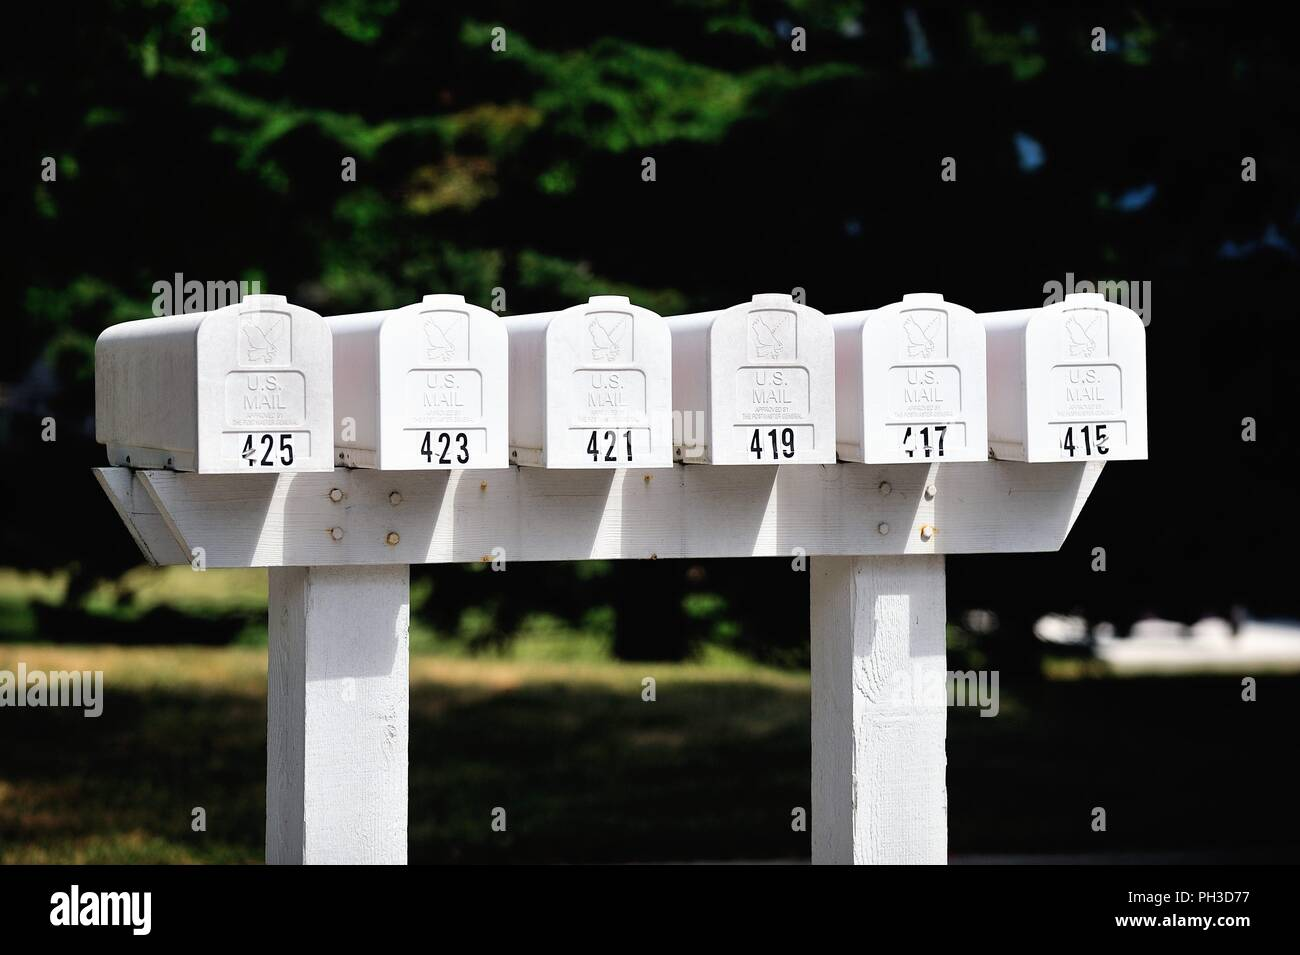 Bartlett, Illinois, USA. A series of mailboxes mounted together along a cul-de-sac surrounded by townhouses. - Stock Image